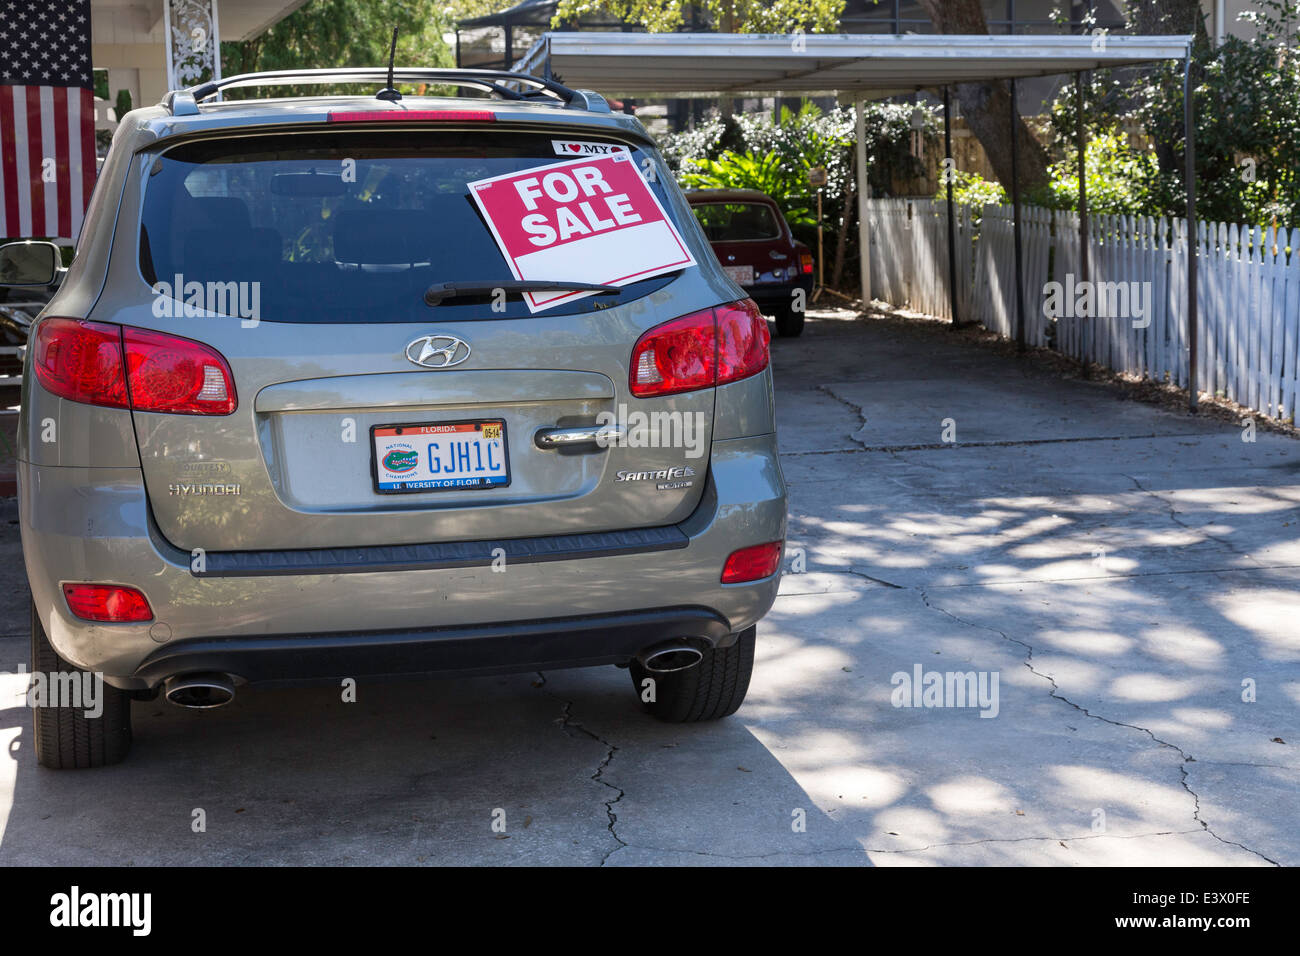 Used Car For Sale by Owner, USA Stock Photo: 71256626 - Alamy